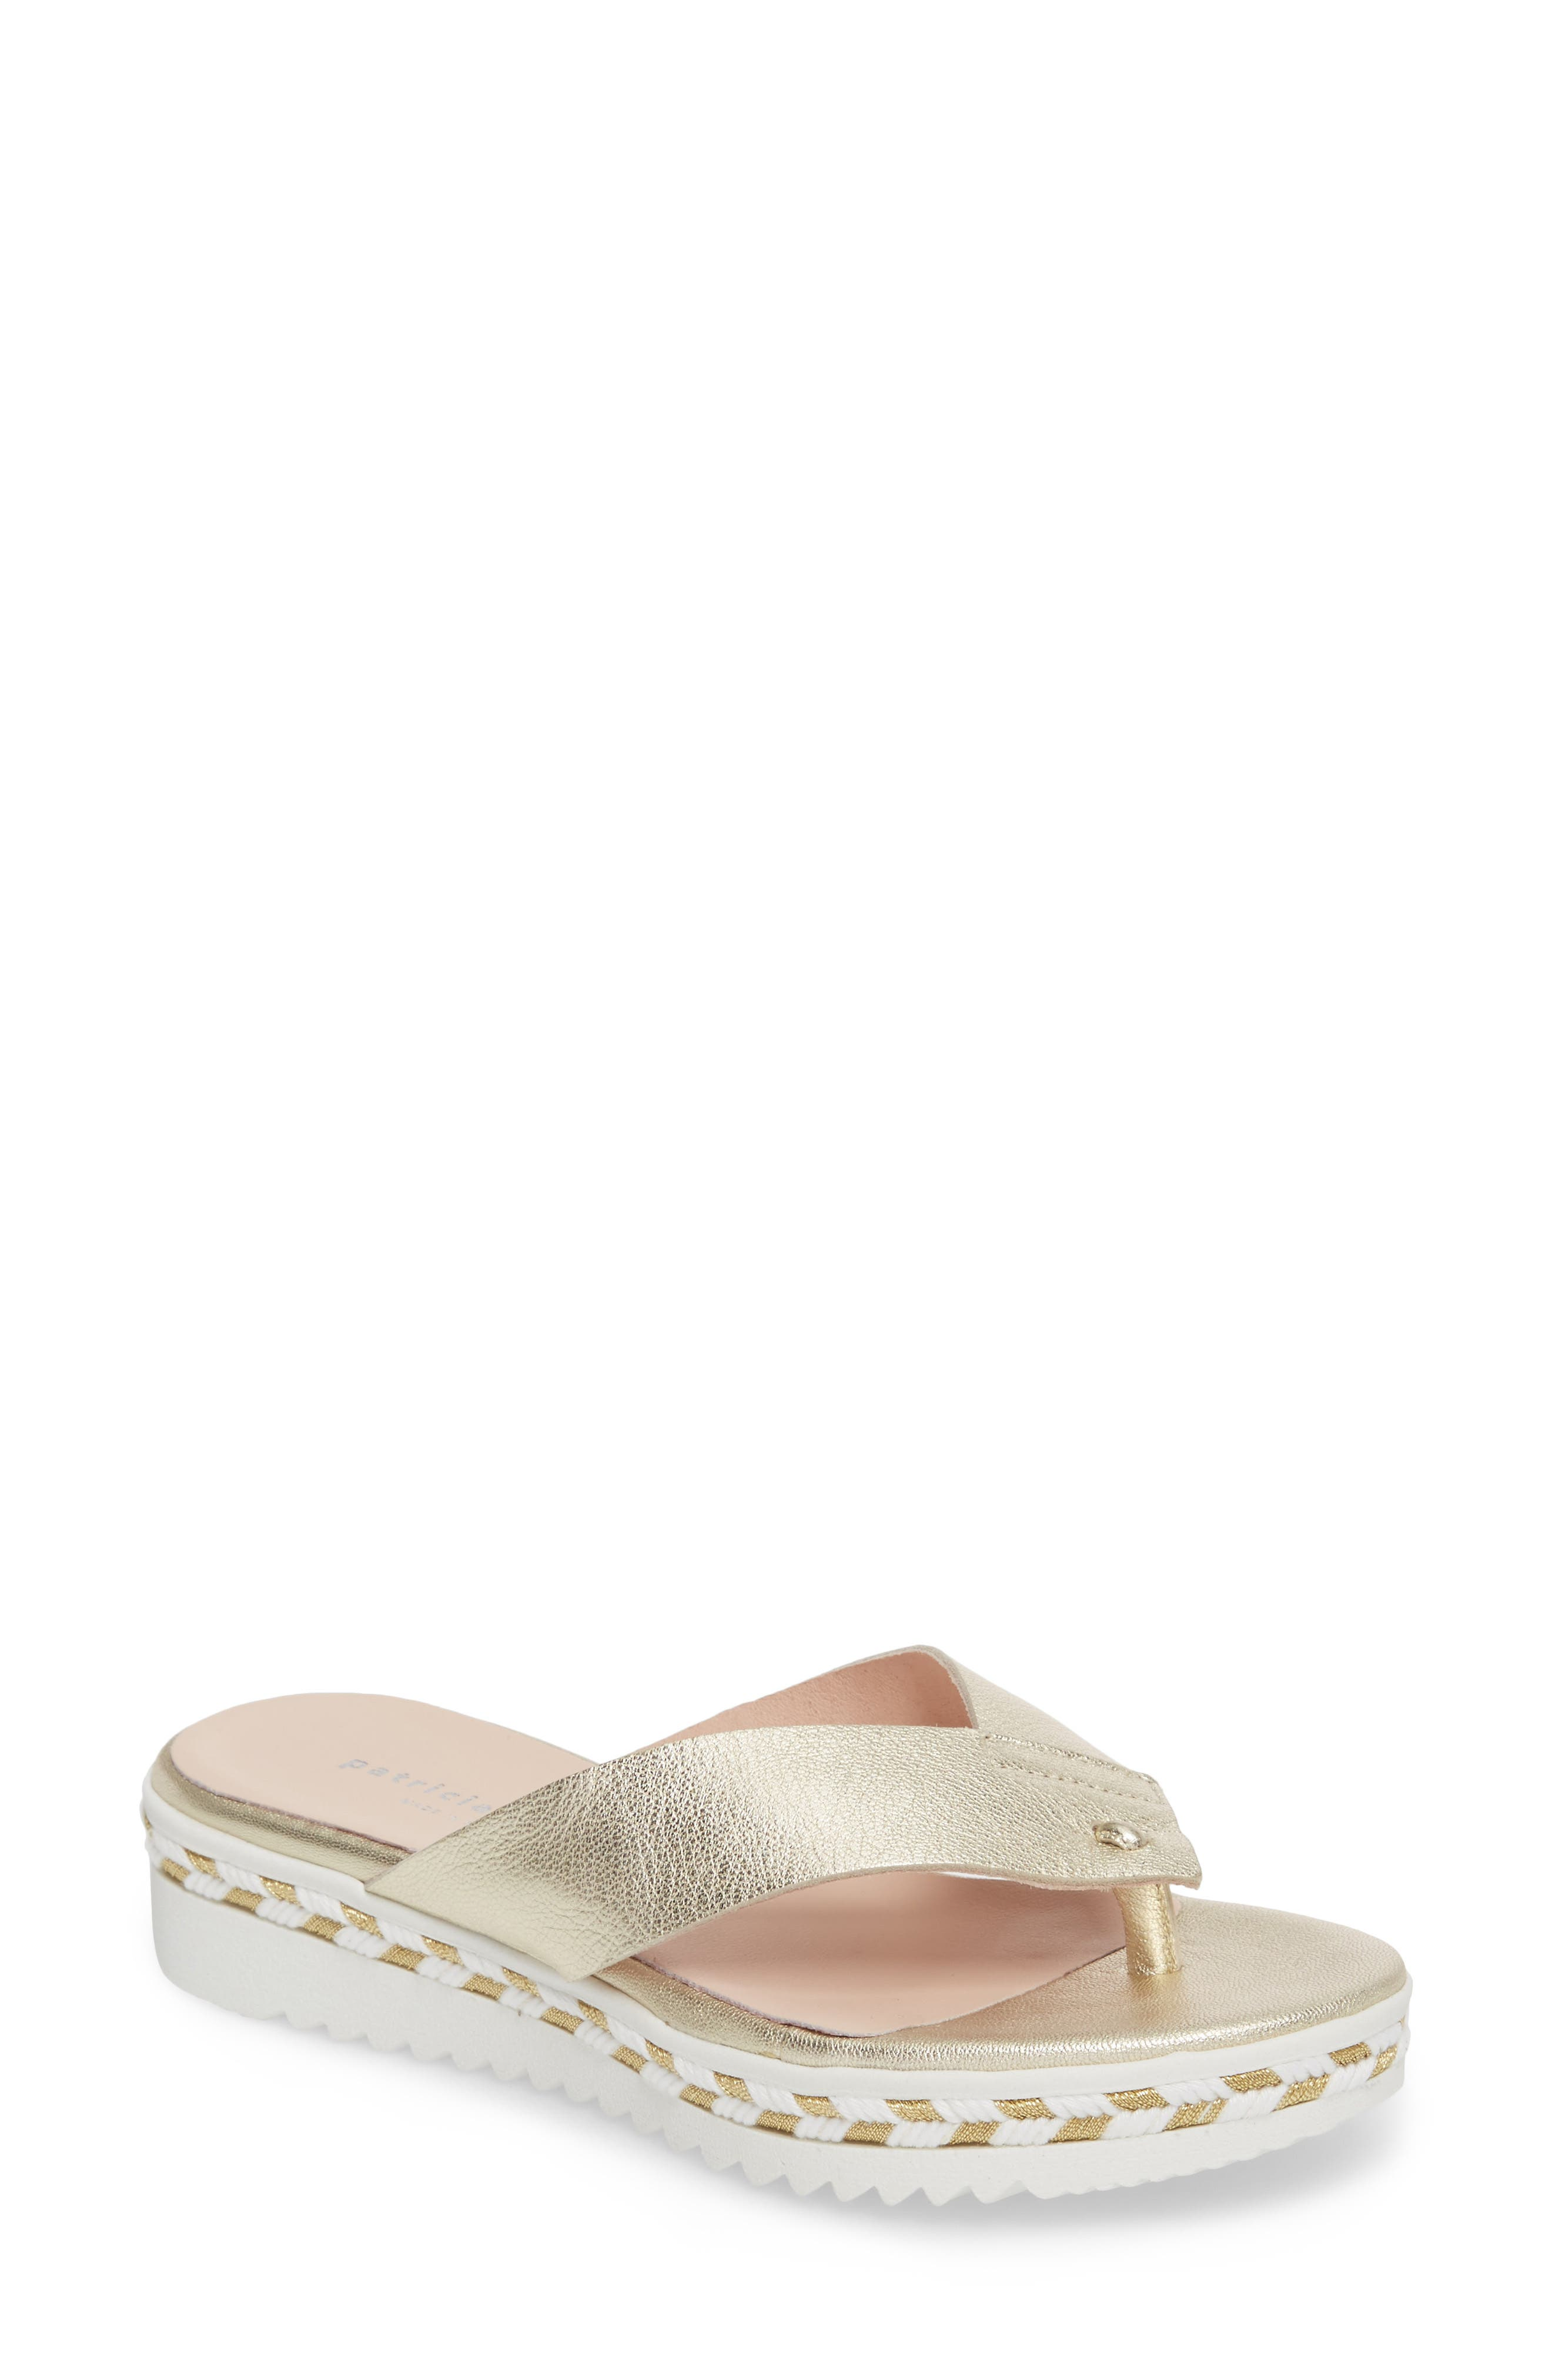 Brooklyn Wedge Flip Flop,                             Main thumbnail 1, color,                             Gold Leather